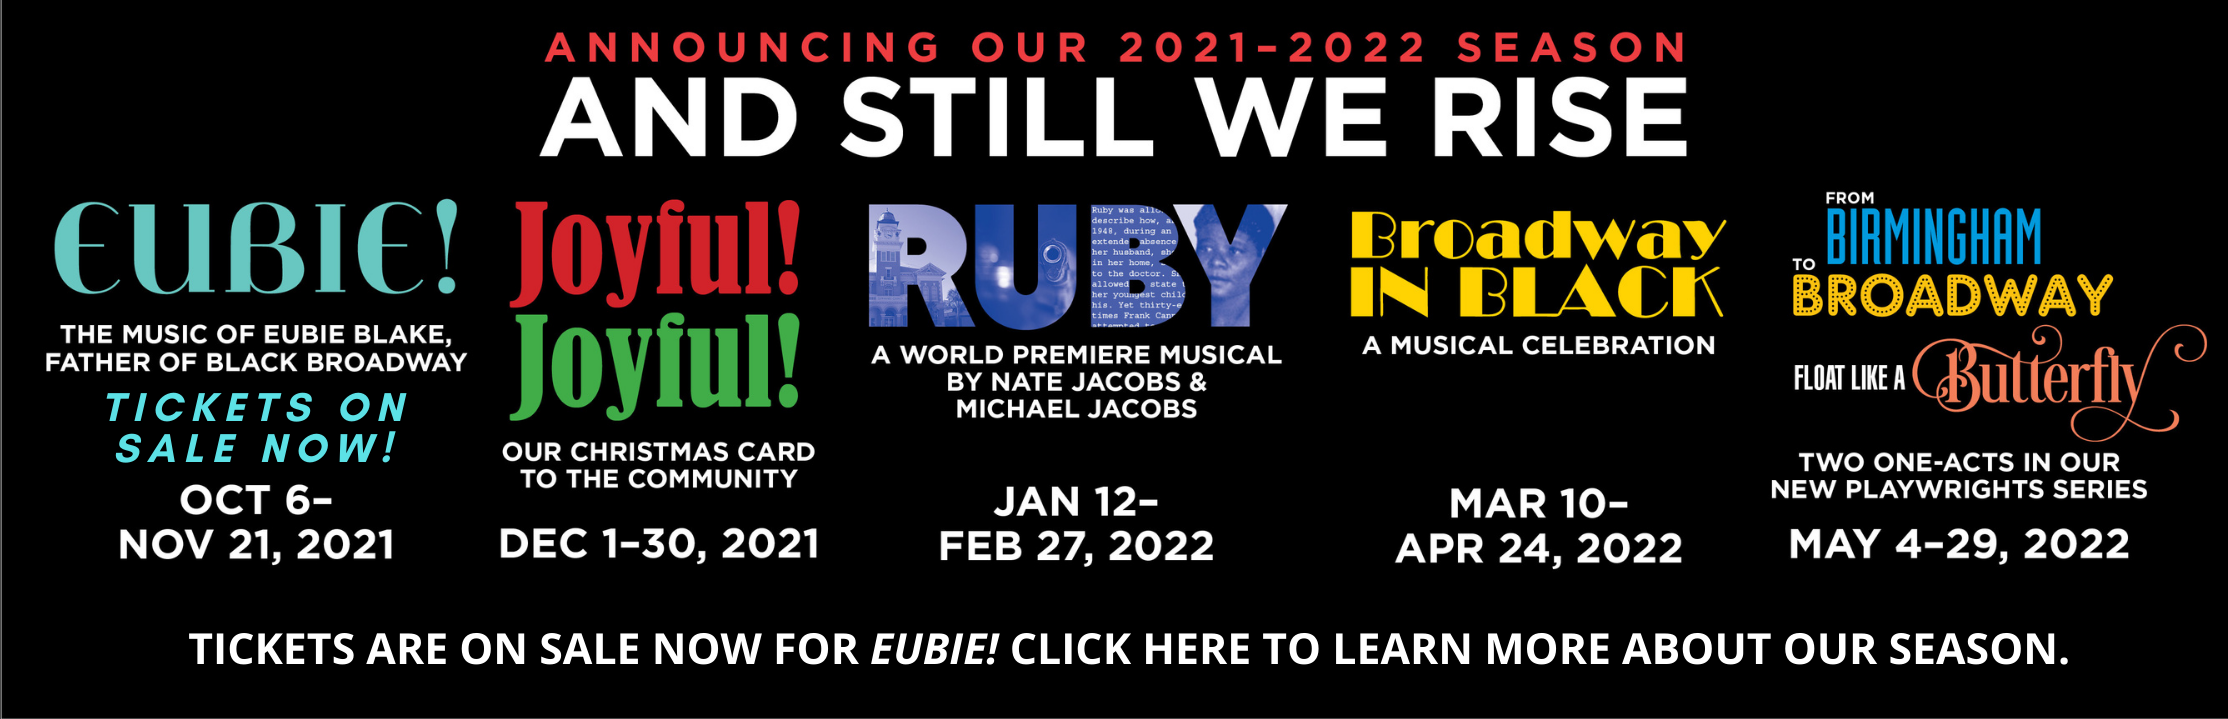 Announcing our 2021-2022 Season! Tickets on sale late summer 2021. Click here to learn more!